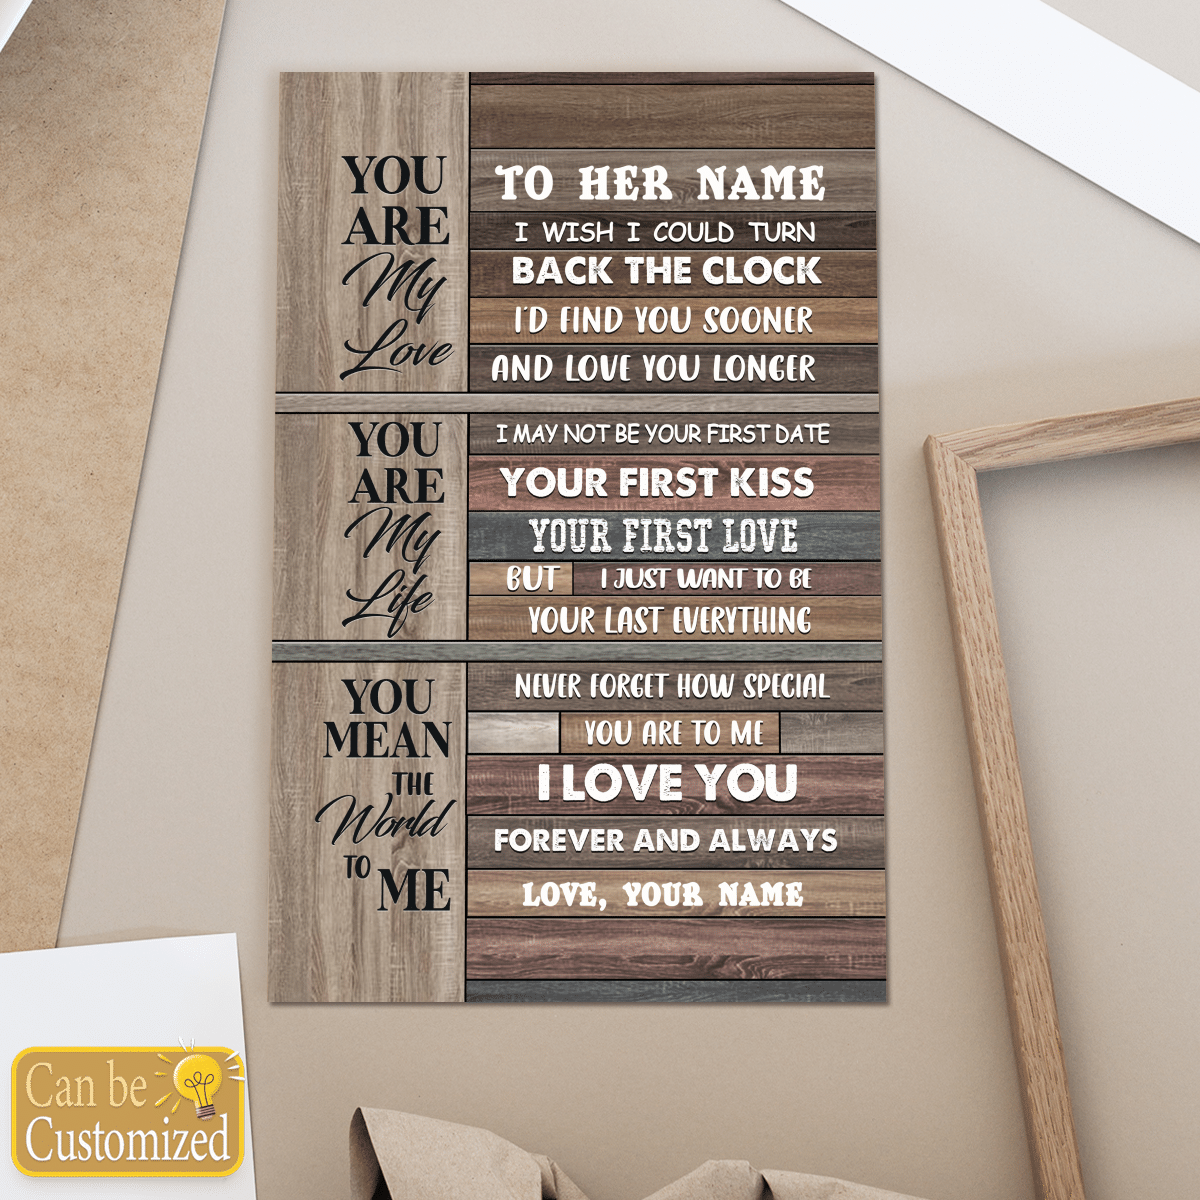 Youre my love youre my life you mean the world to me custom name poster and canvas 3